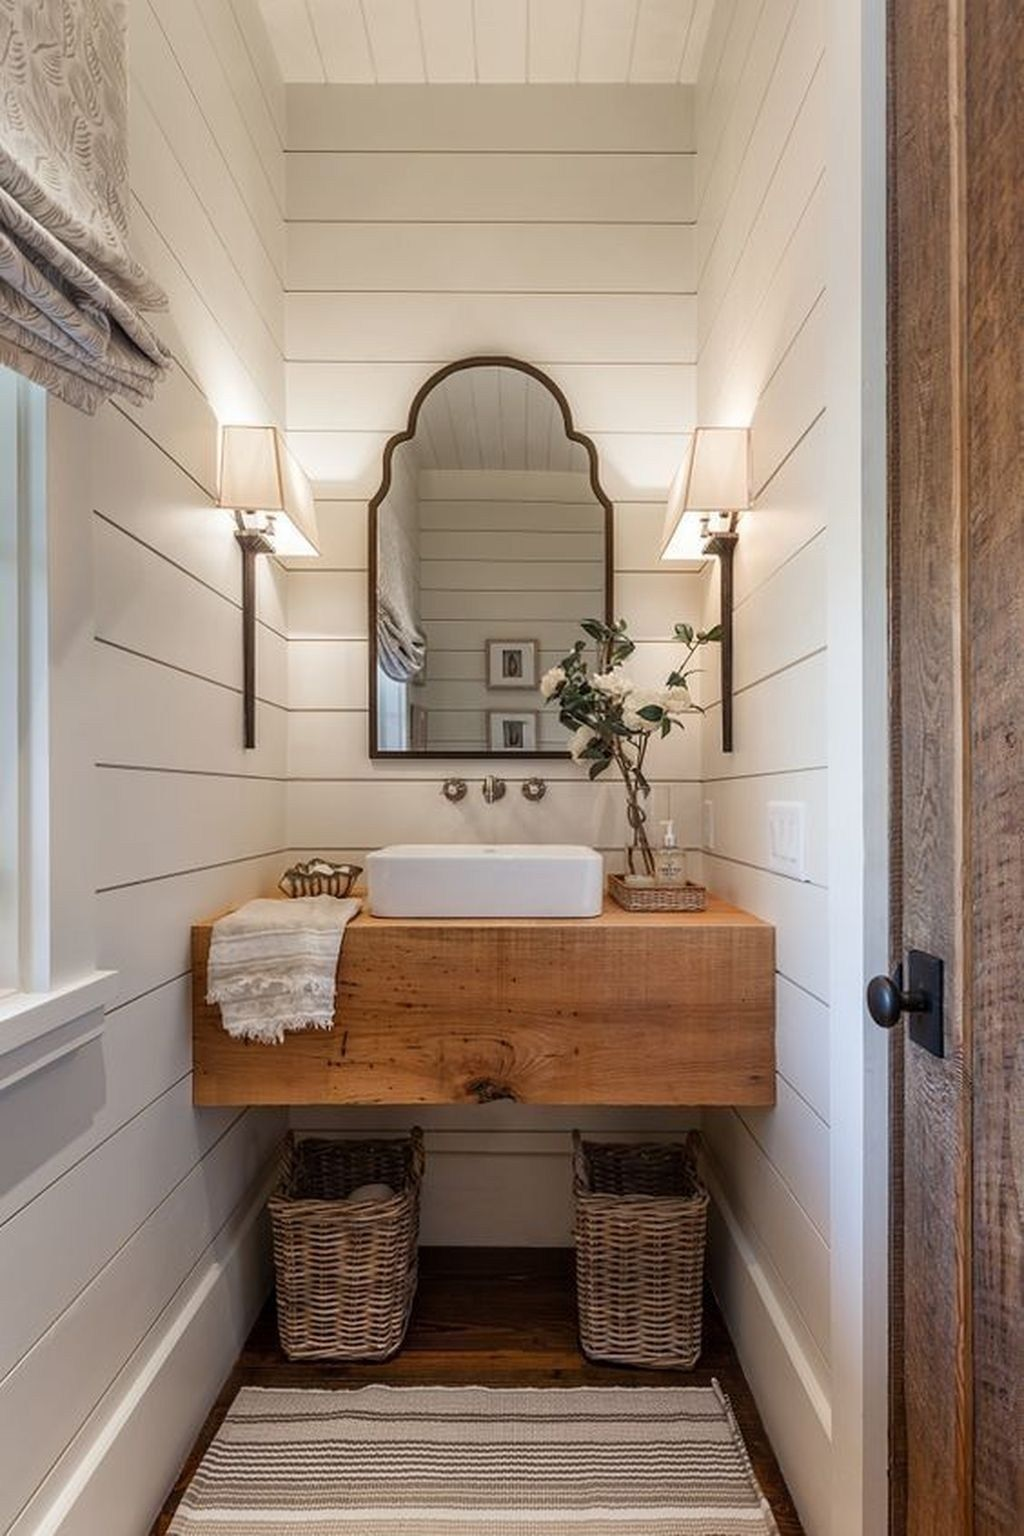 You Don T Have To Live On A Homestead To Appreciate Farmhouse Style Retro And Provincial Diy Bathroom Remodel Small Bathroom Remodel Bathroom Vanity Remodel